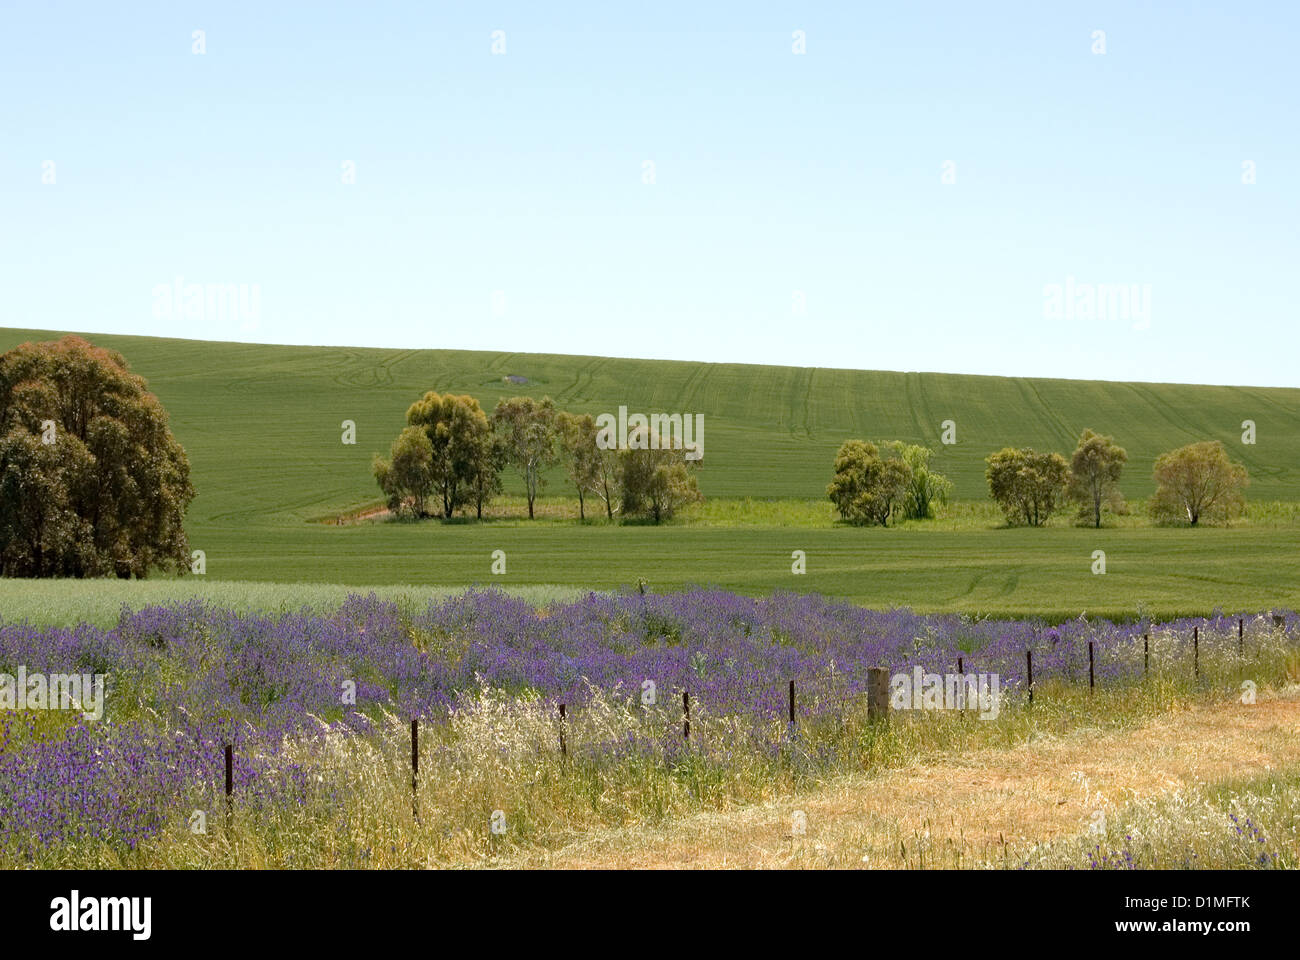 Farmland near Cootamundra, in South-Western New South Wales, Australia - Stock Image